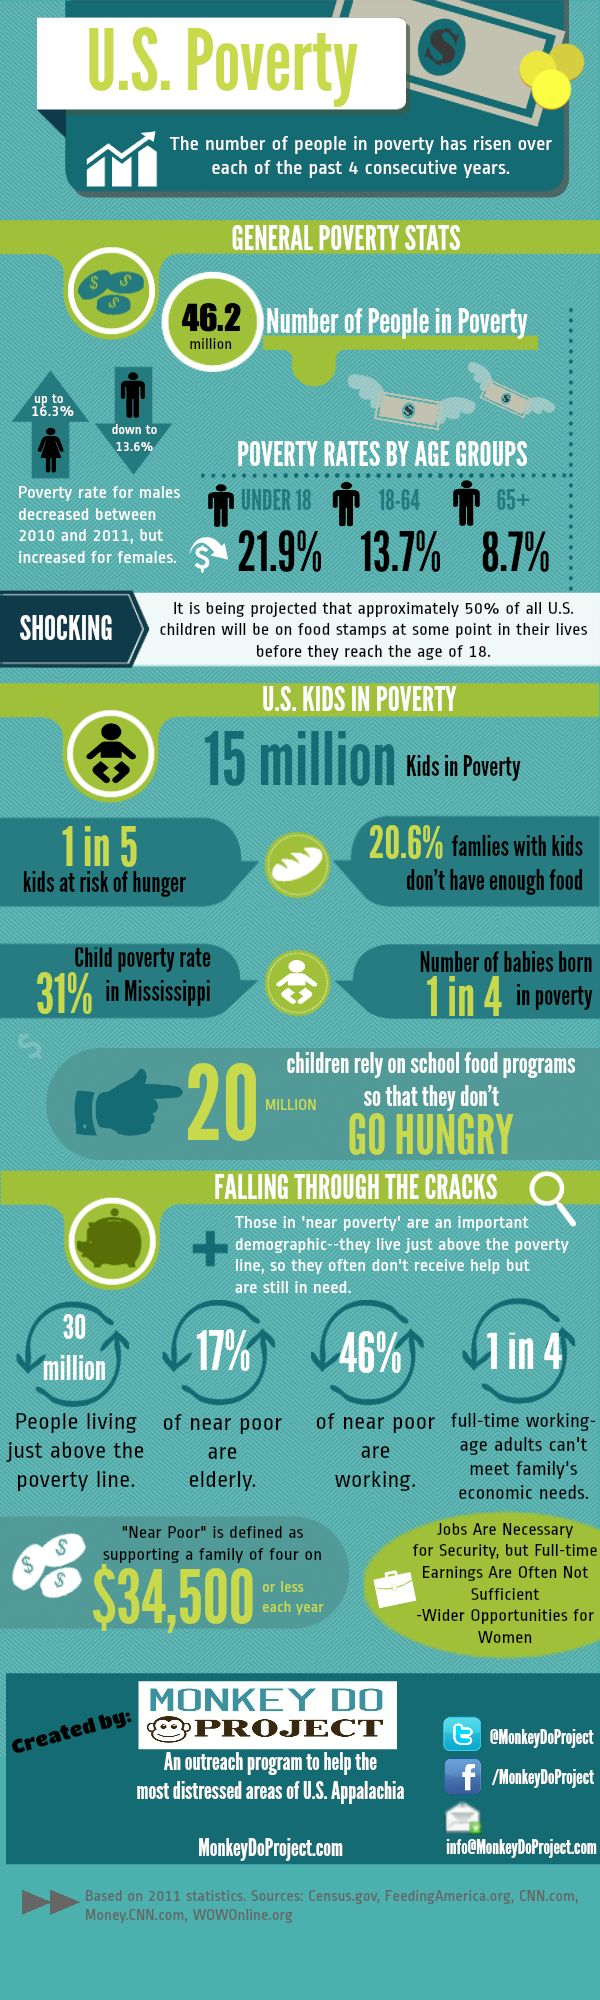 13 best images about Infographics: Poverty on Pinterest ...